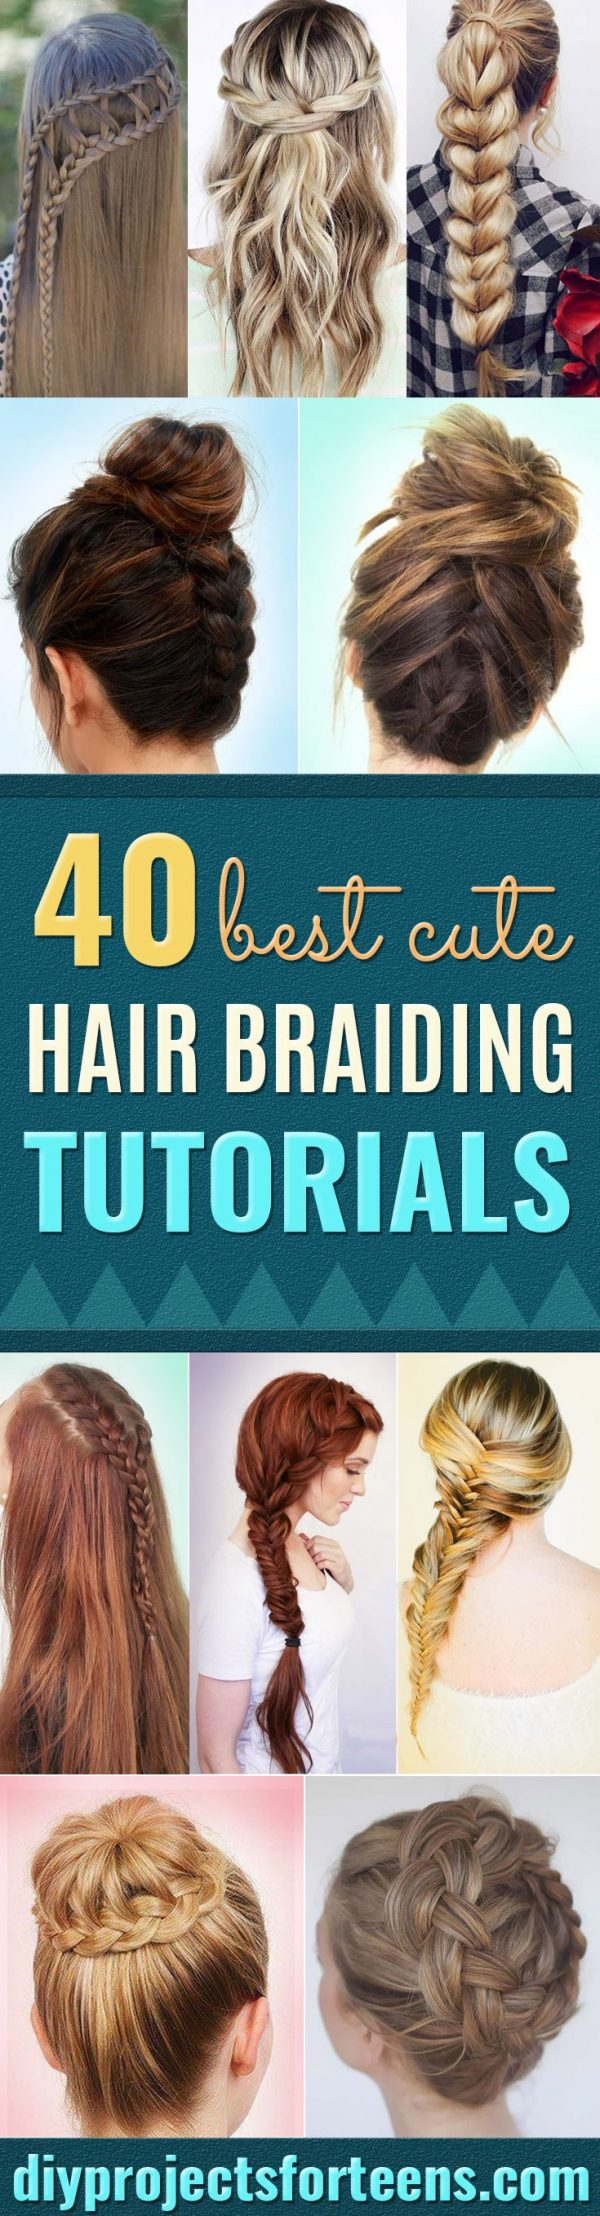 Best Hair Braiding Tutorials - Easy Step by Step Tutorials for Braids - How To Braid Fishtail, French Braids, Flower Crown, Side Braids, Cornrows, Updos - Cool Braided Hairstyles for Girls, Teens and Women - School, Day and Evening, Boho, Casual and Formal Looks #hairstyles #braiding #braidingtutorials #diyhair